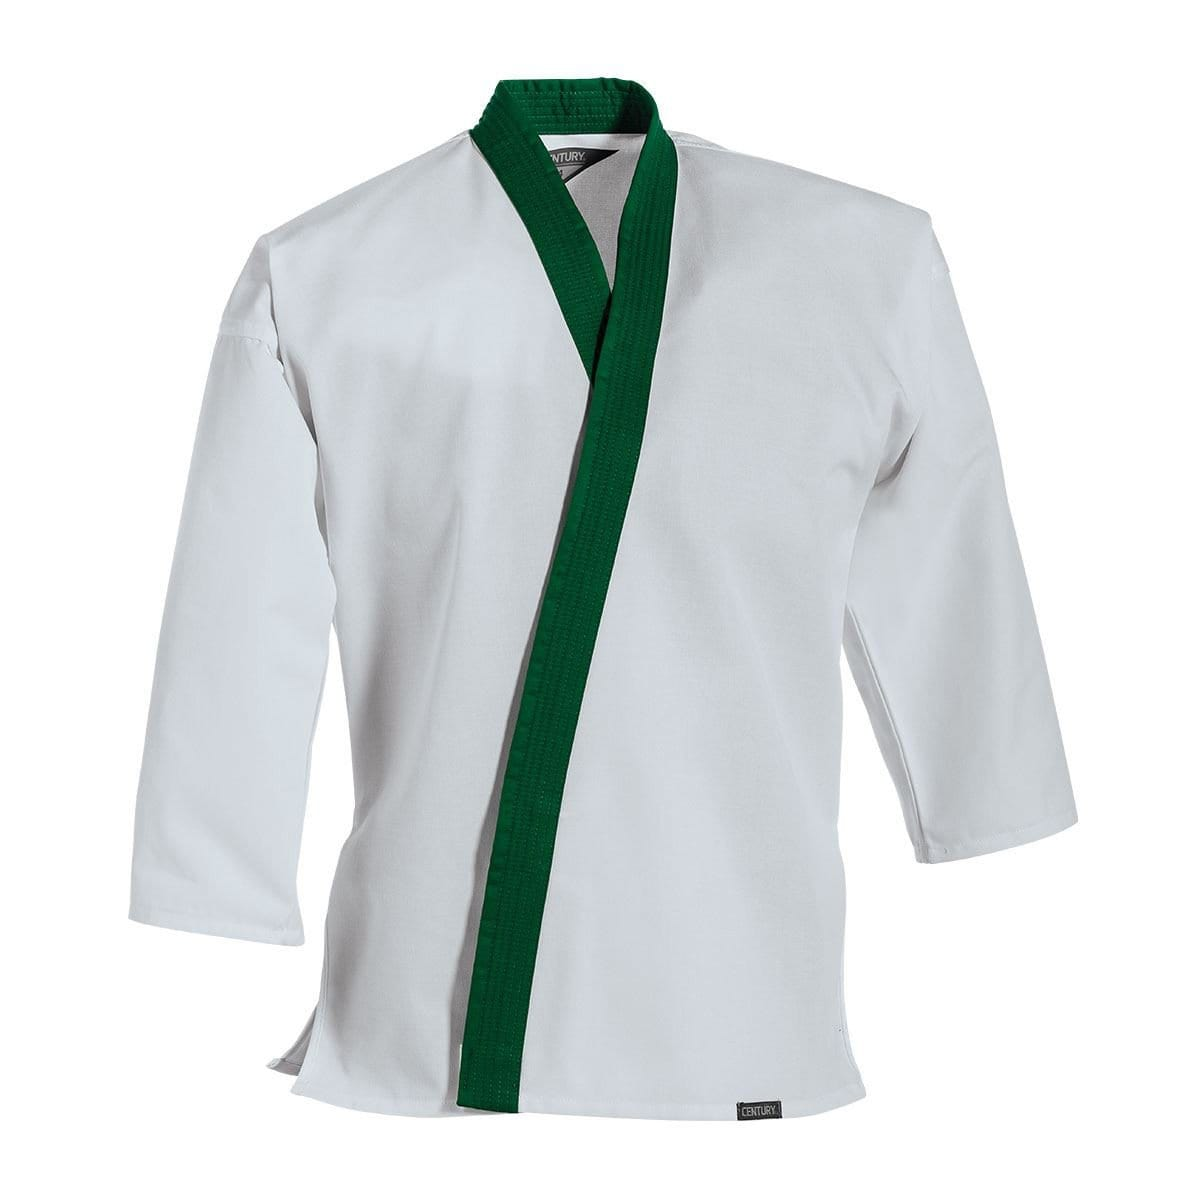 Traditional Tang Soo Do Jacket Green Trim